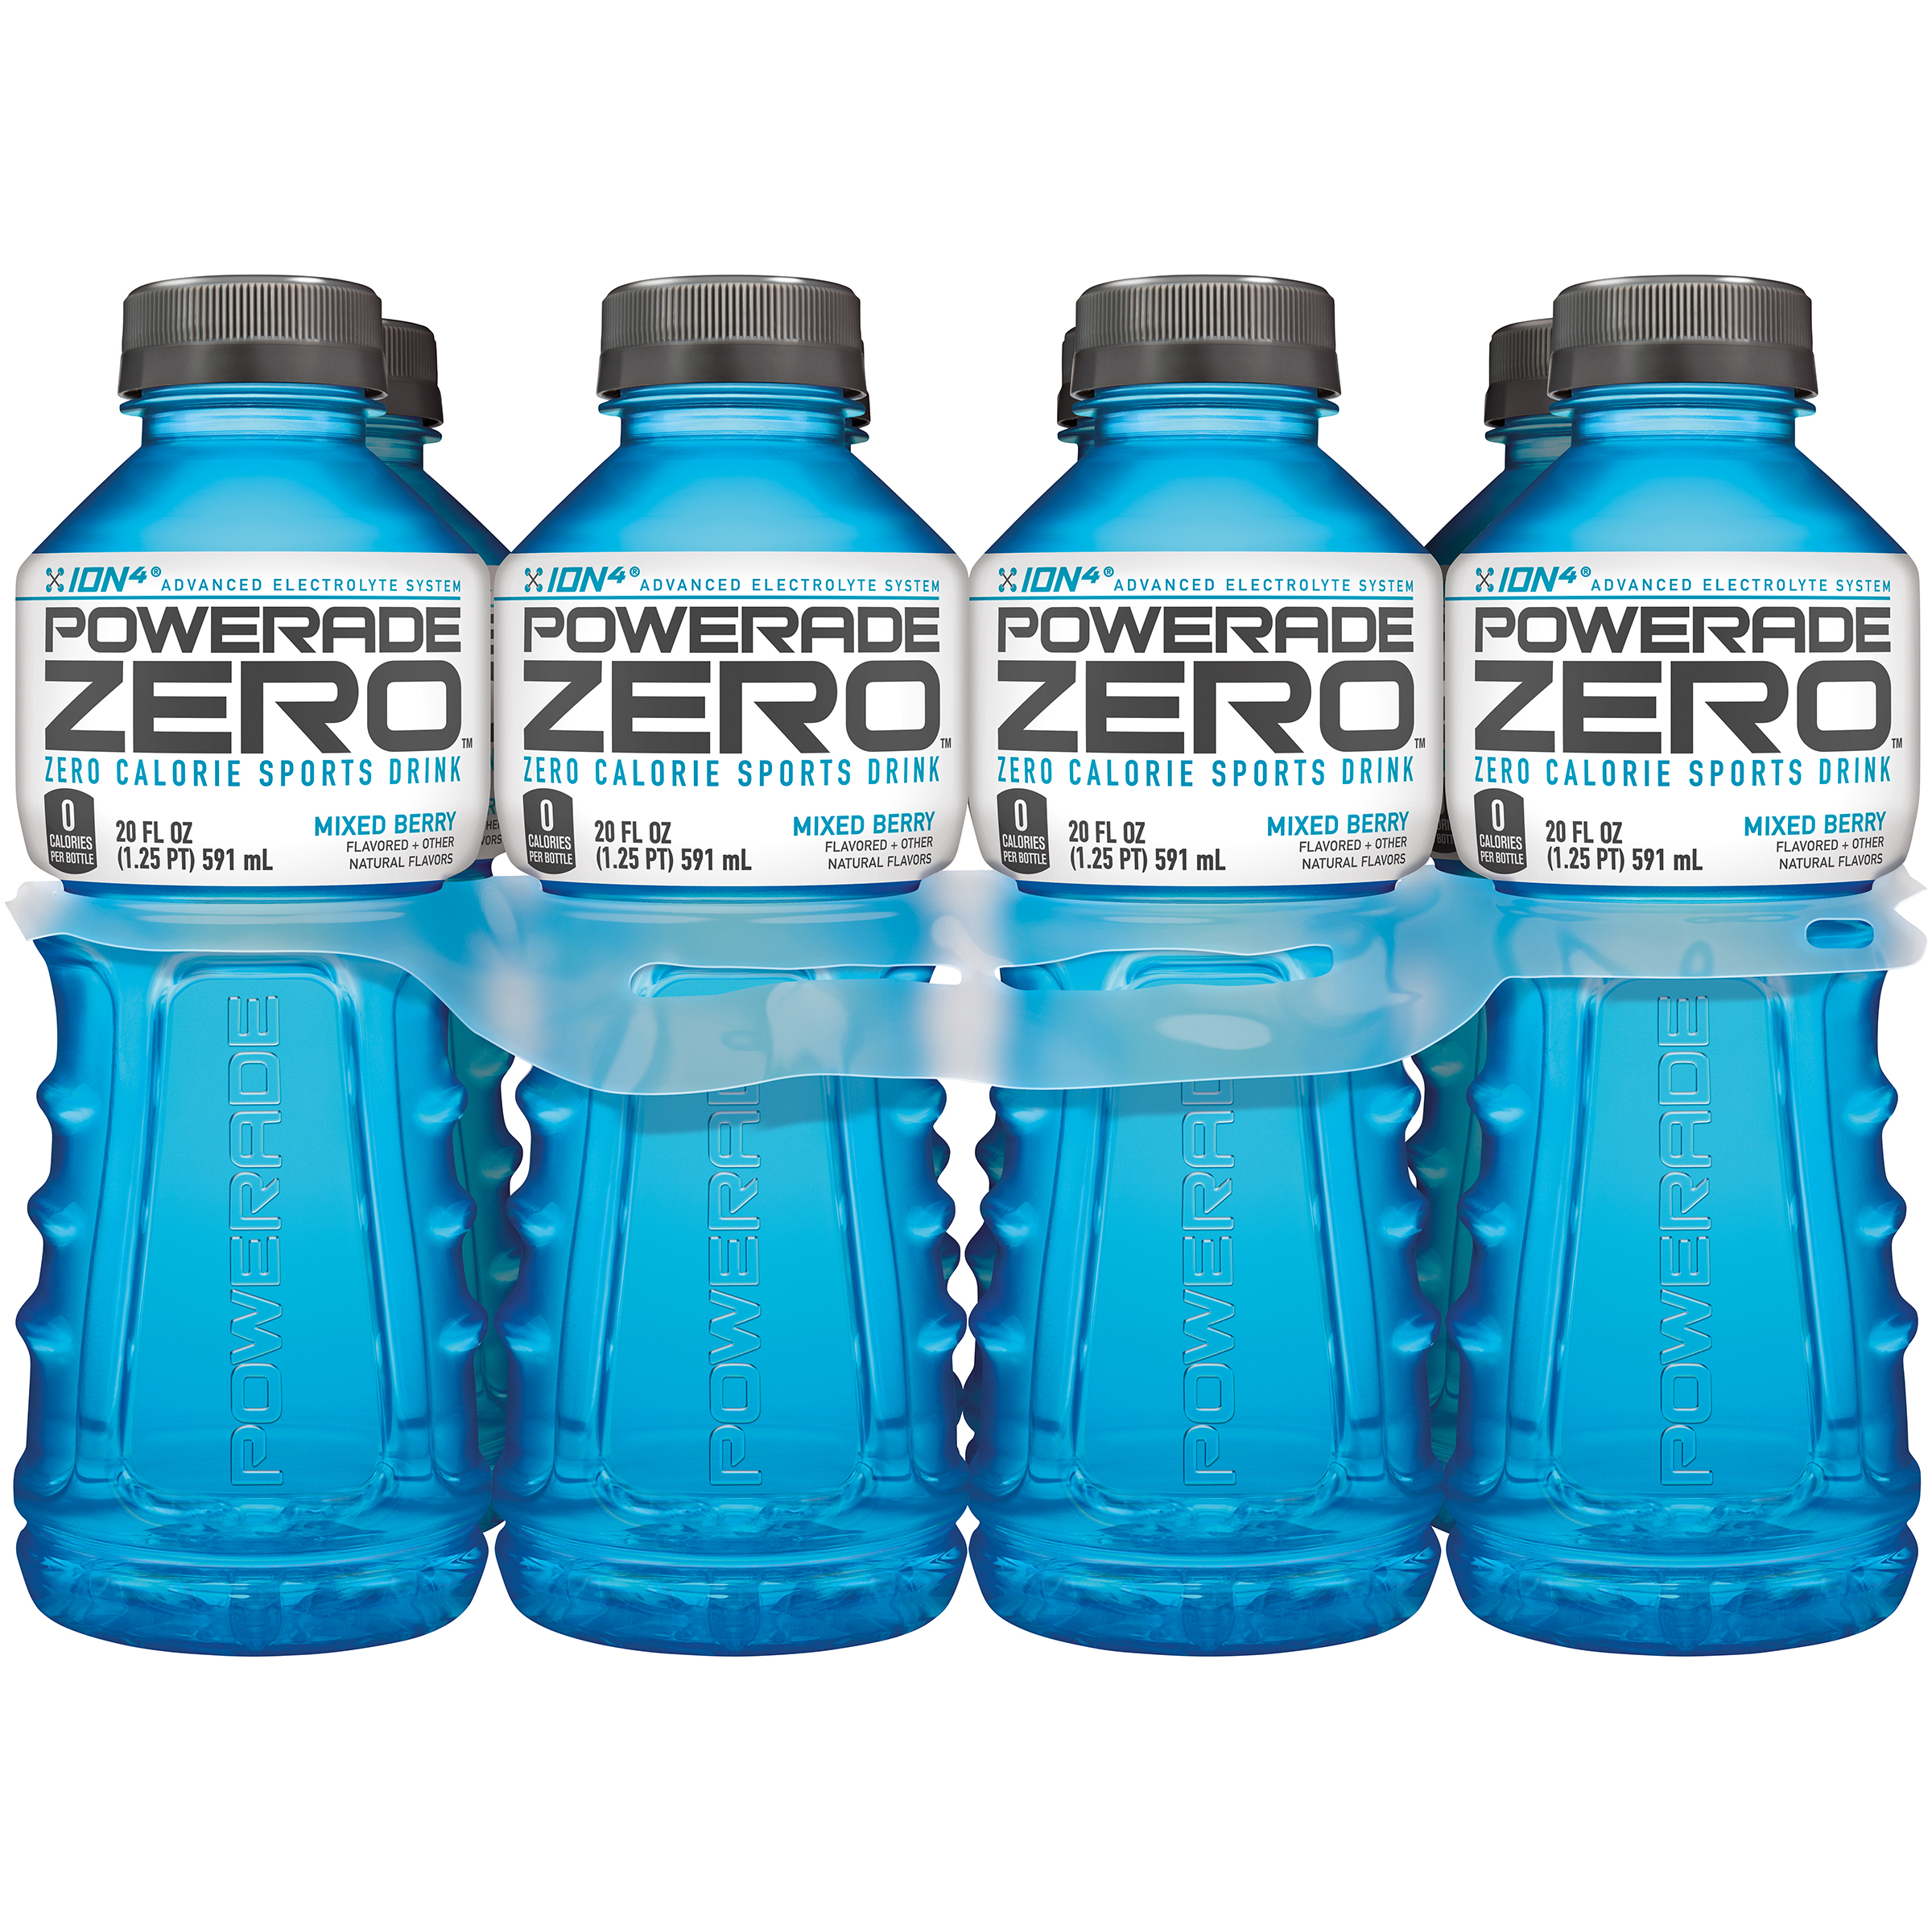 POWERADE ZERO Sports Drink, Mixed Berry, 20 fl oz, 8 Pack